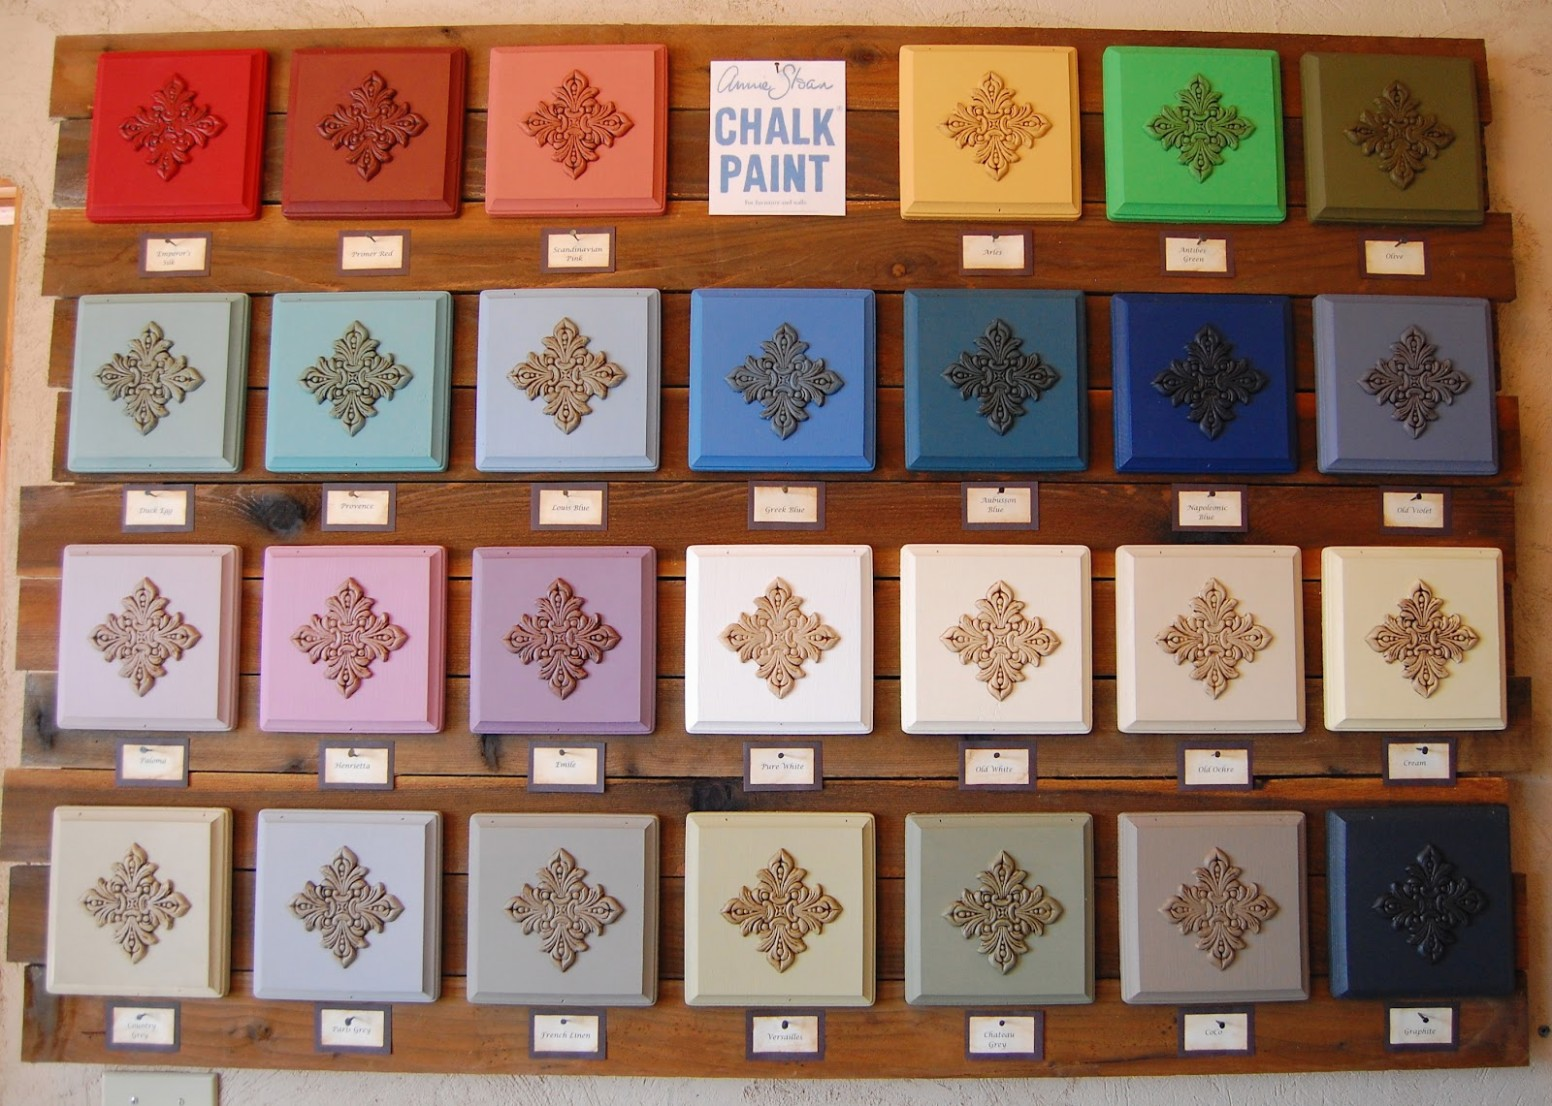 The History of Ann Sloan Chalk Paint